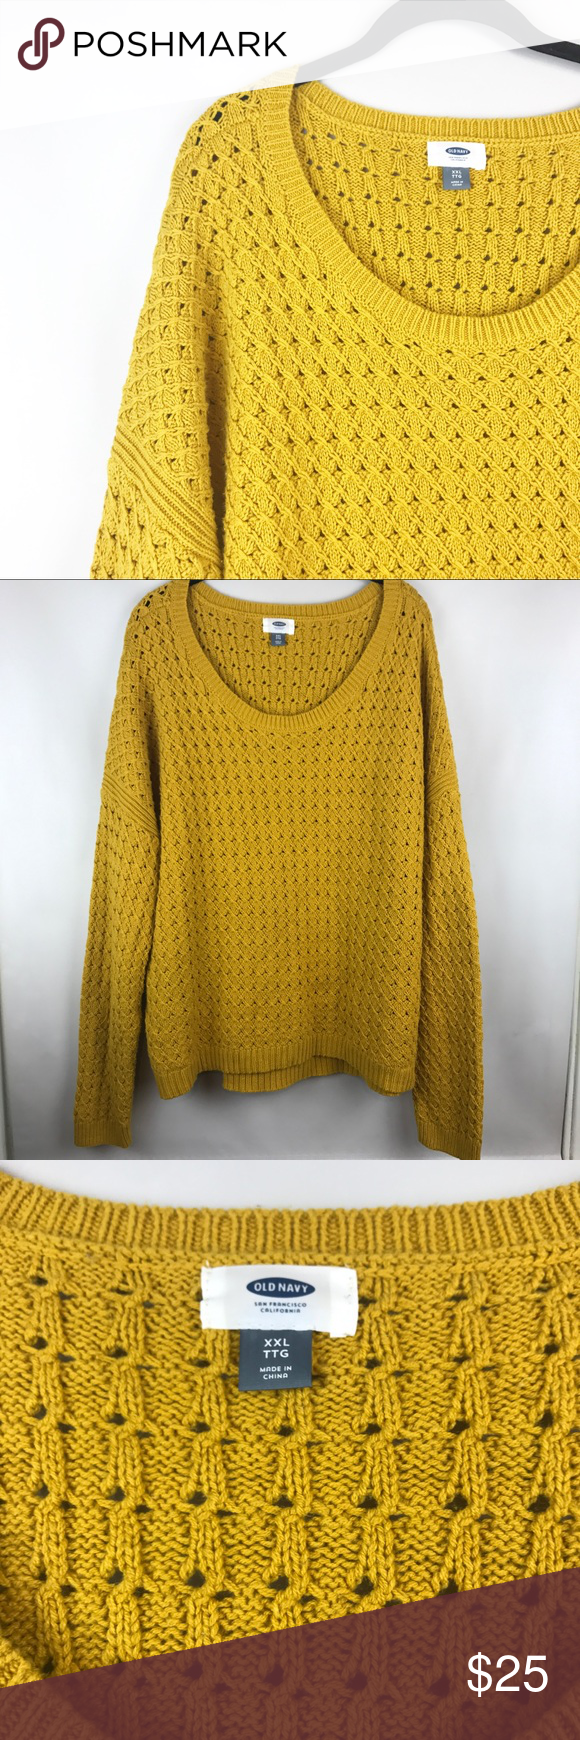 Old Navy Mustard Cable Knit Sweater | Cable knit sweaters, Cable ...